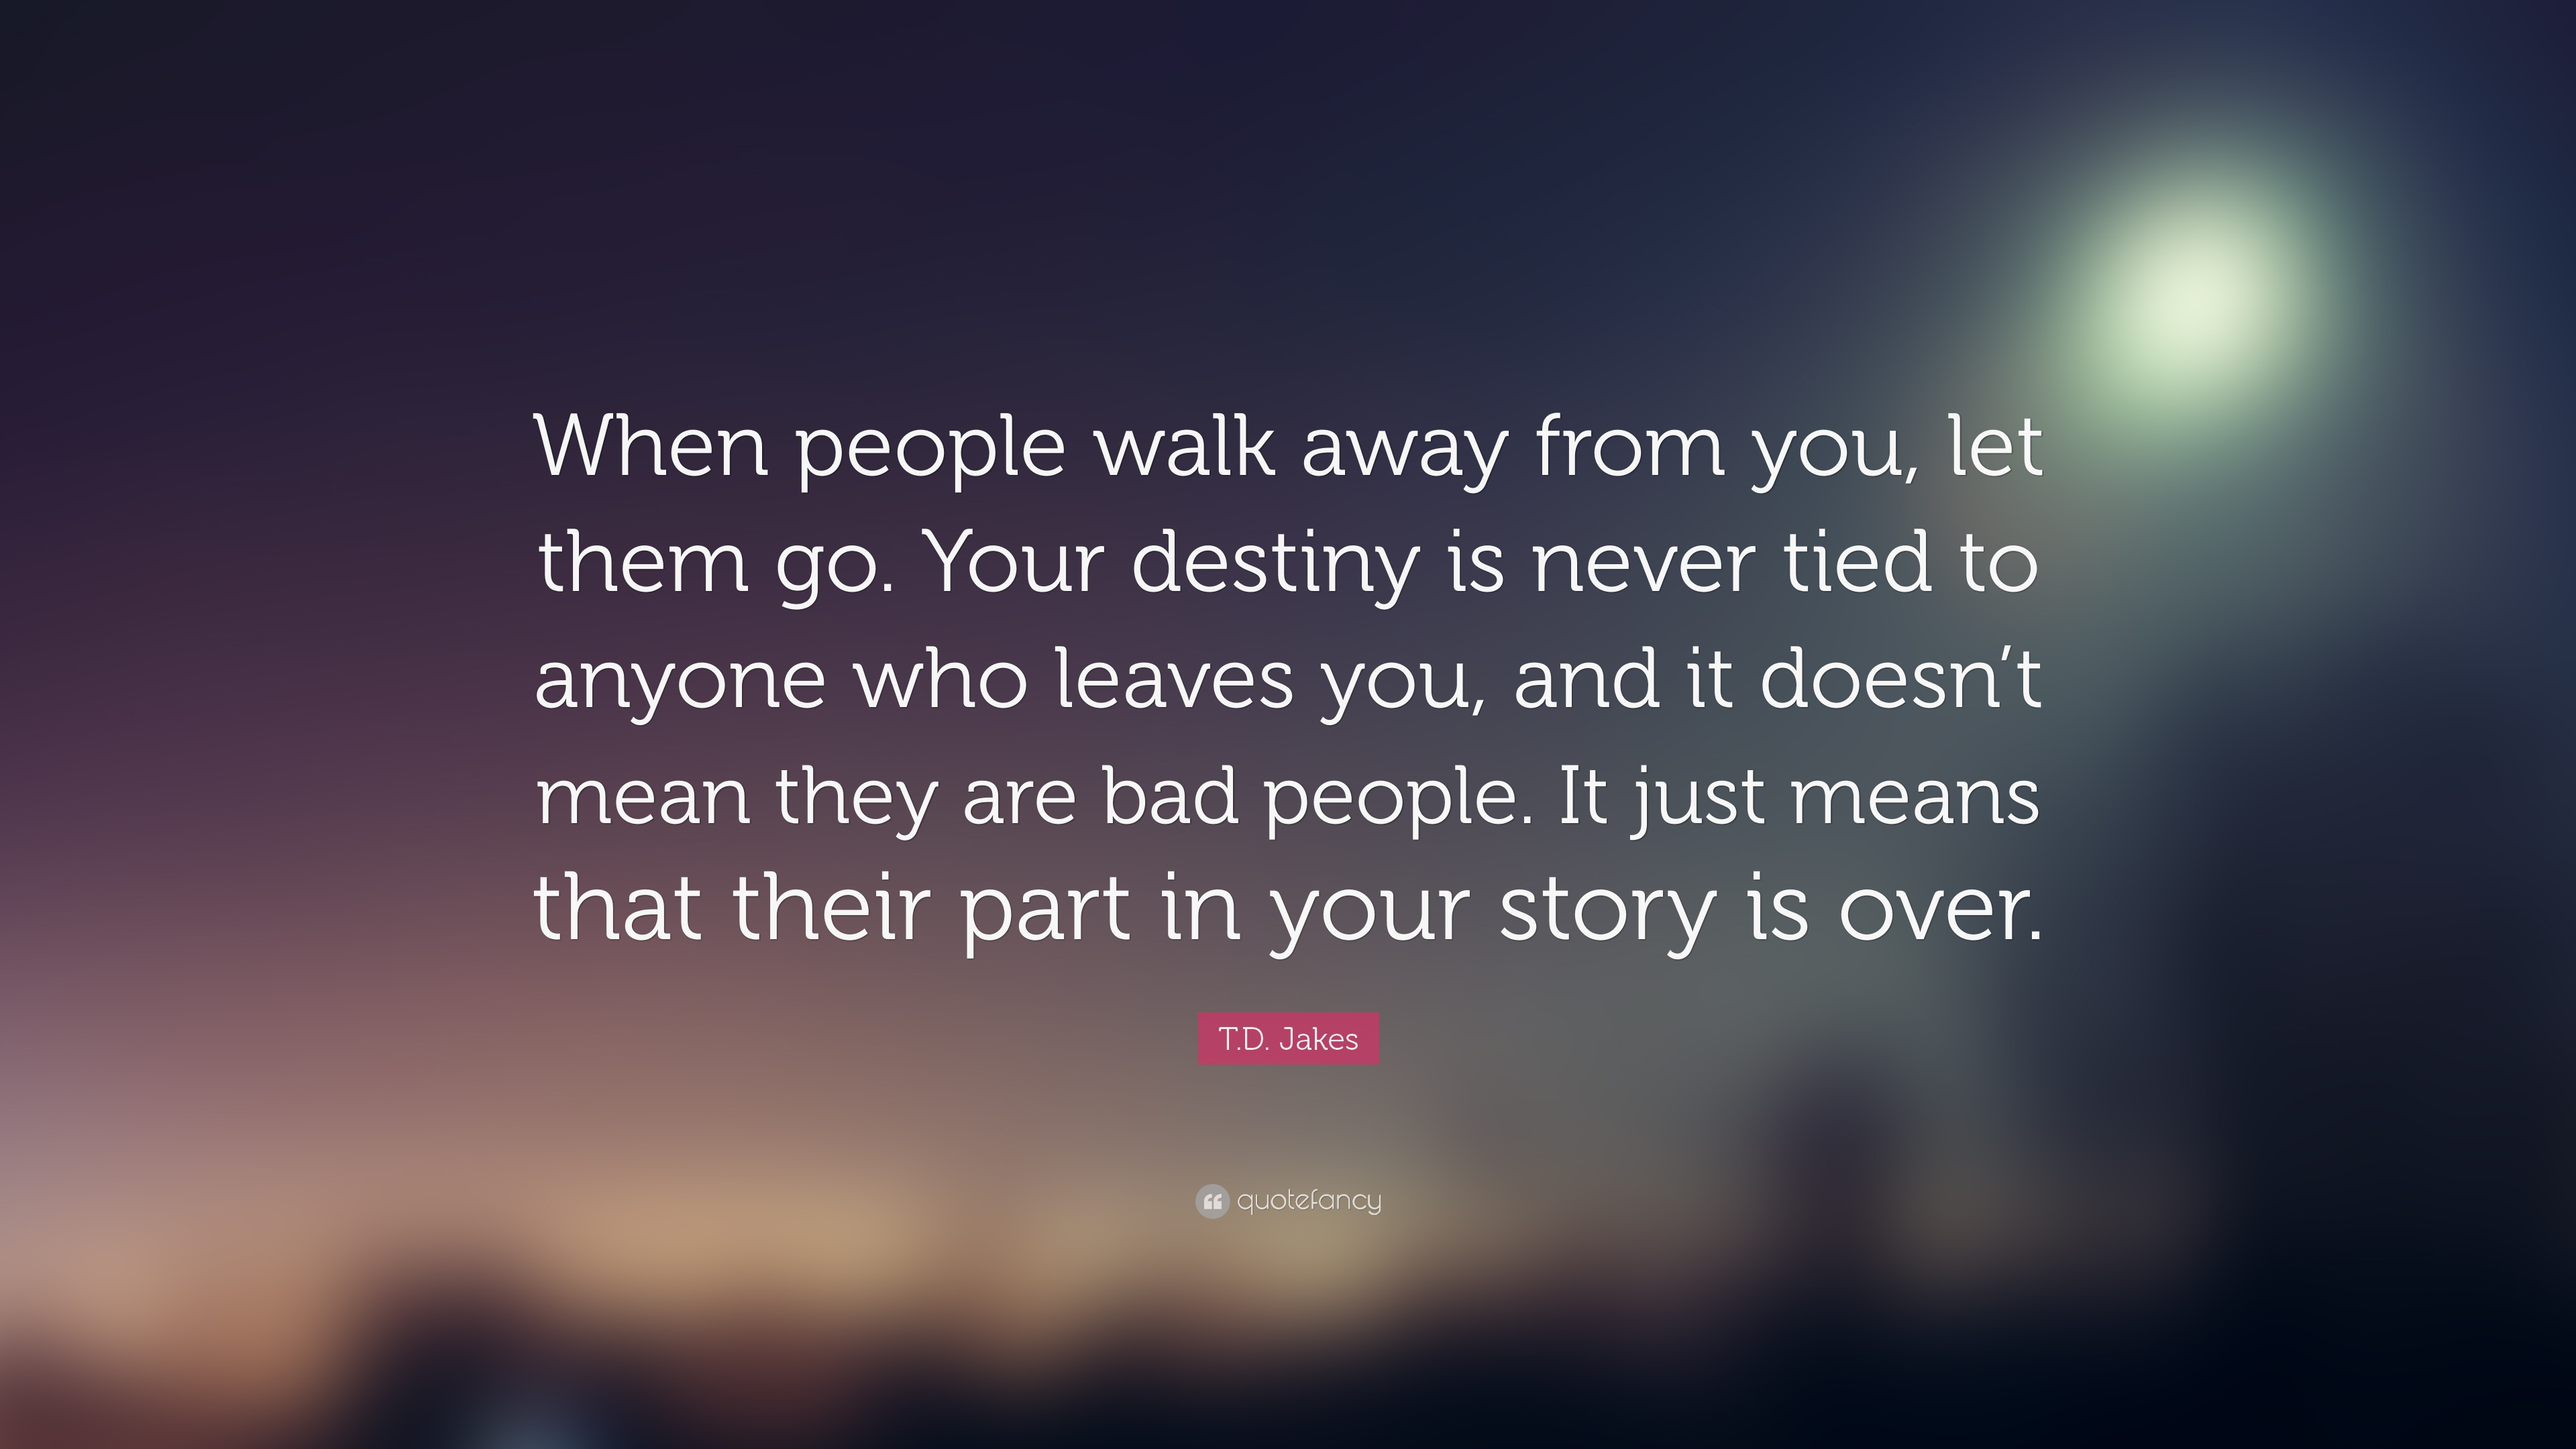 when someone leaves you let them go